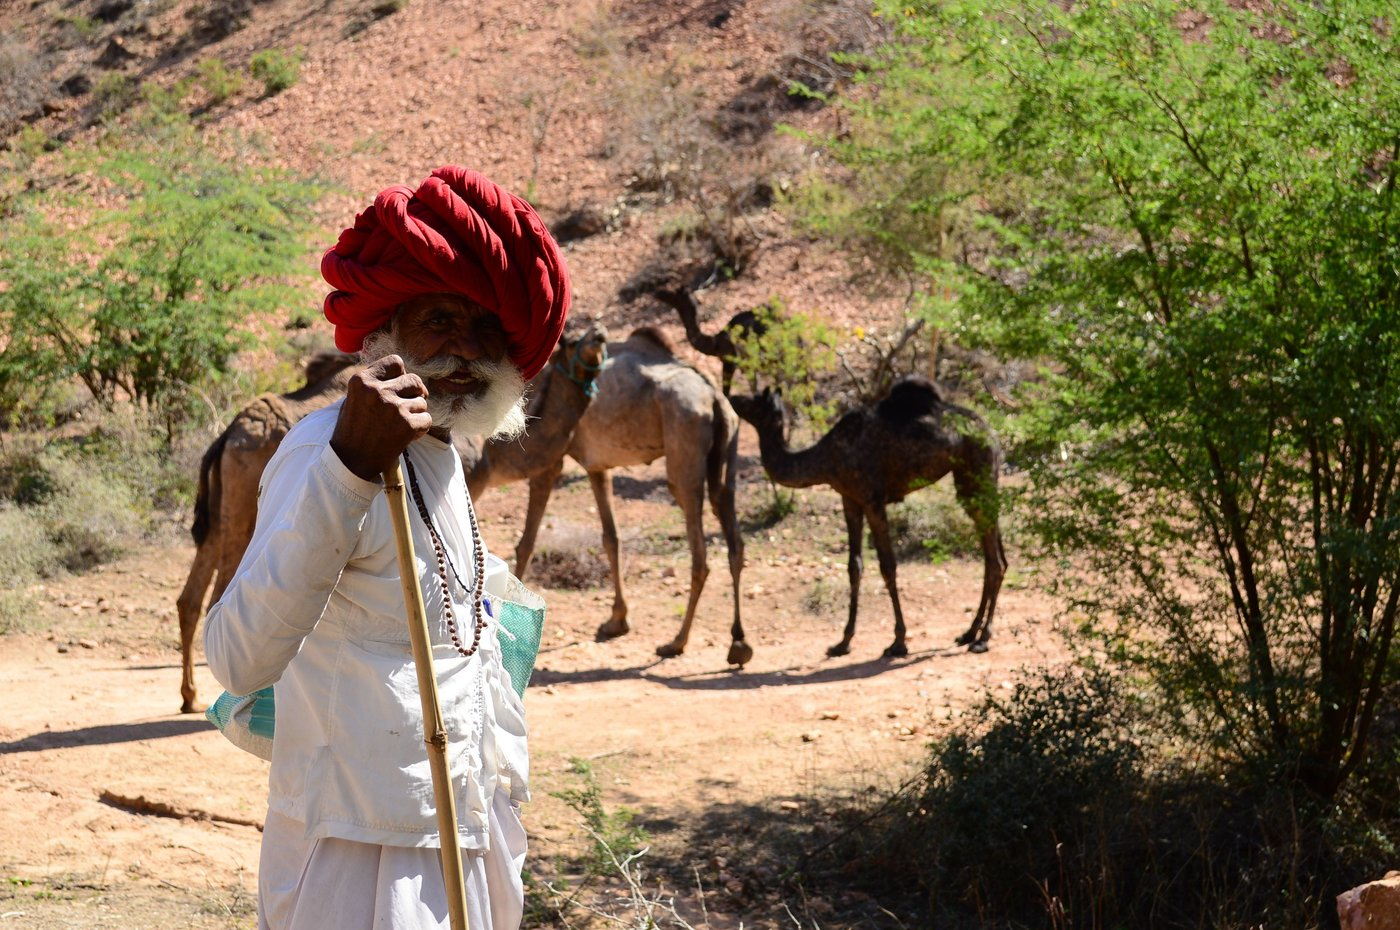 Fuyaramji stands guard while his camels are busy eating